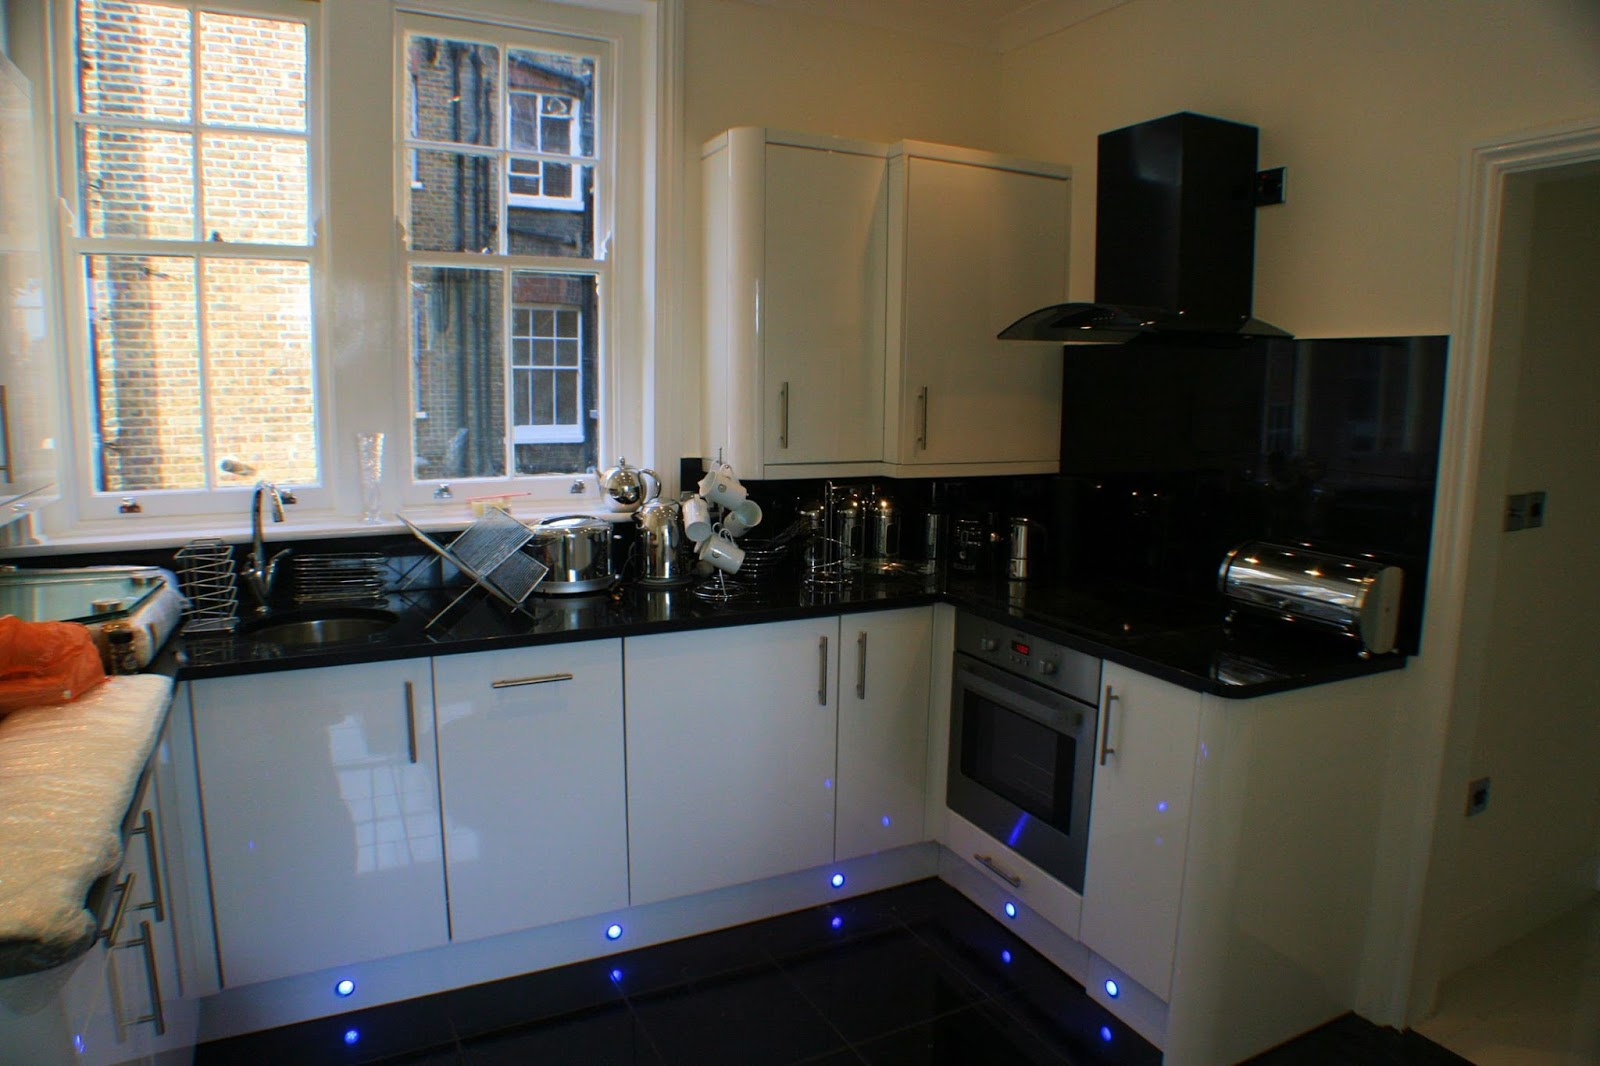 Kitchen Fitter London Builders In Chelsea Smoothing Out The Kitchen Layout Efficiently